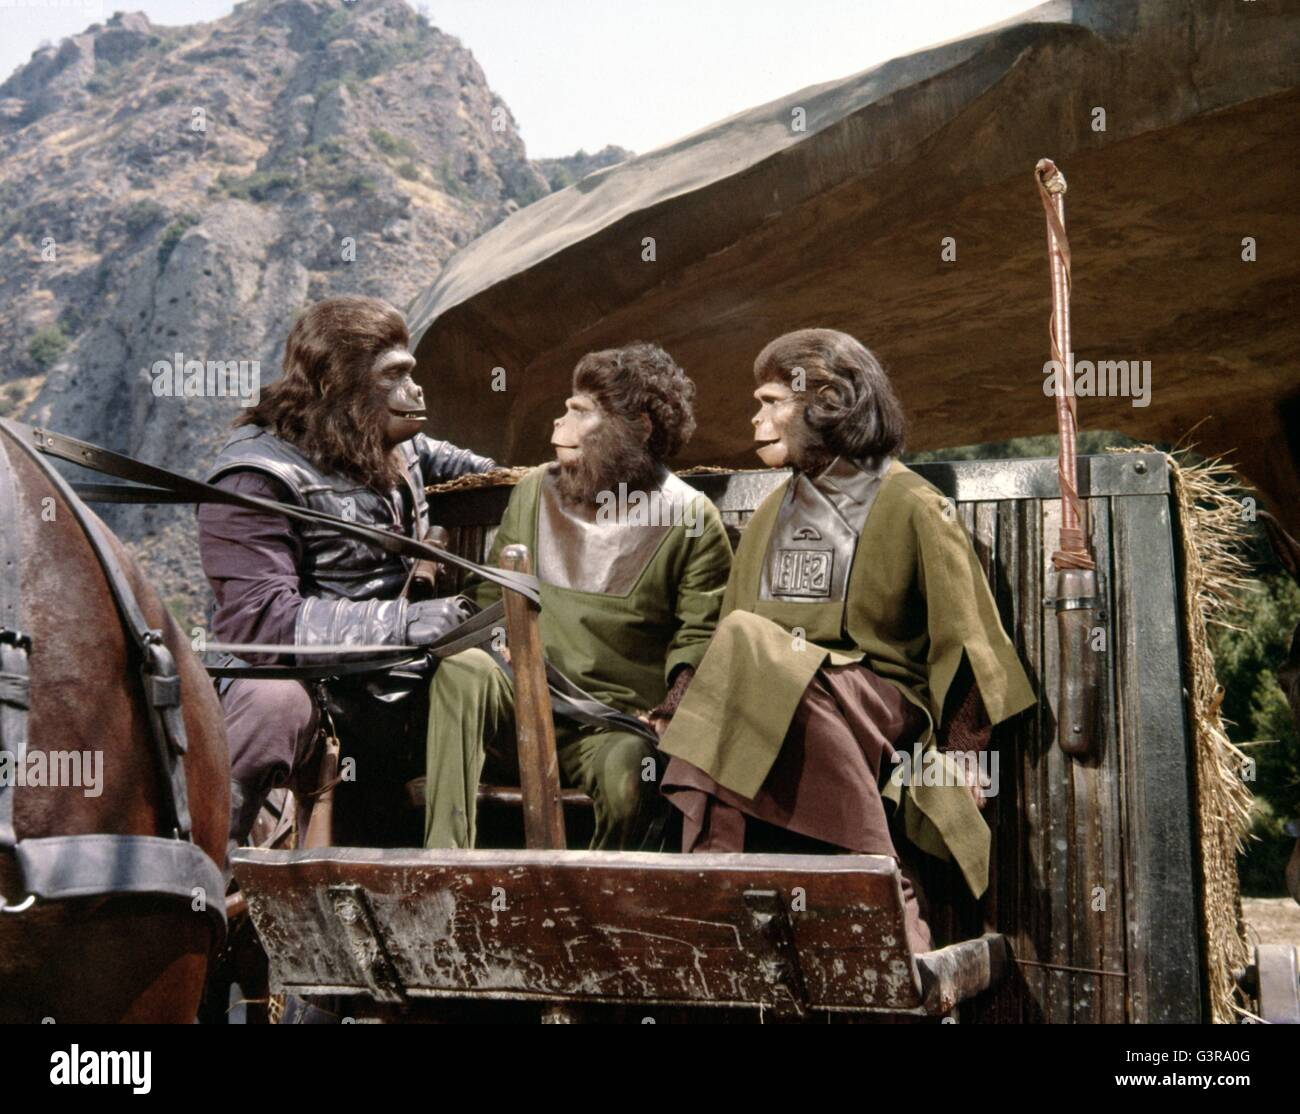 Roddy Mcdowall Planet Of The Apes Stock Photos Roddy Mcdowall